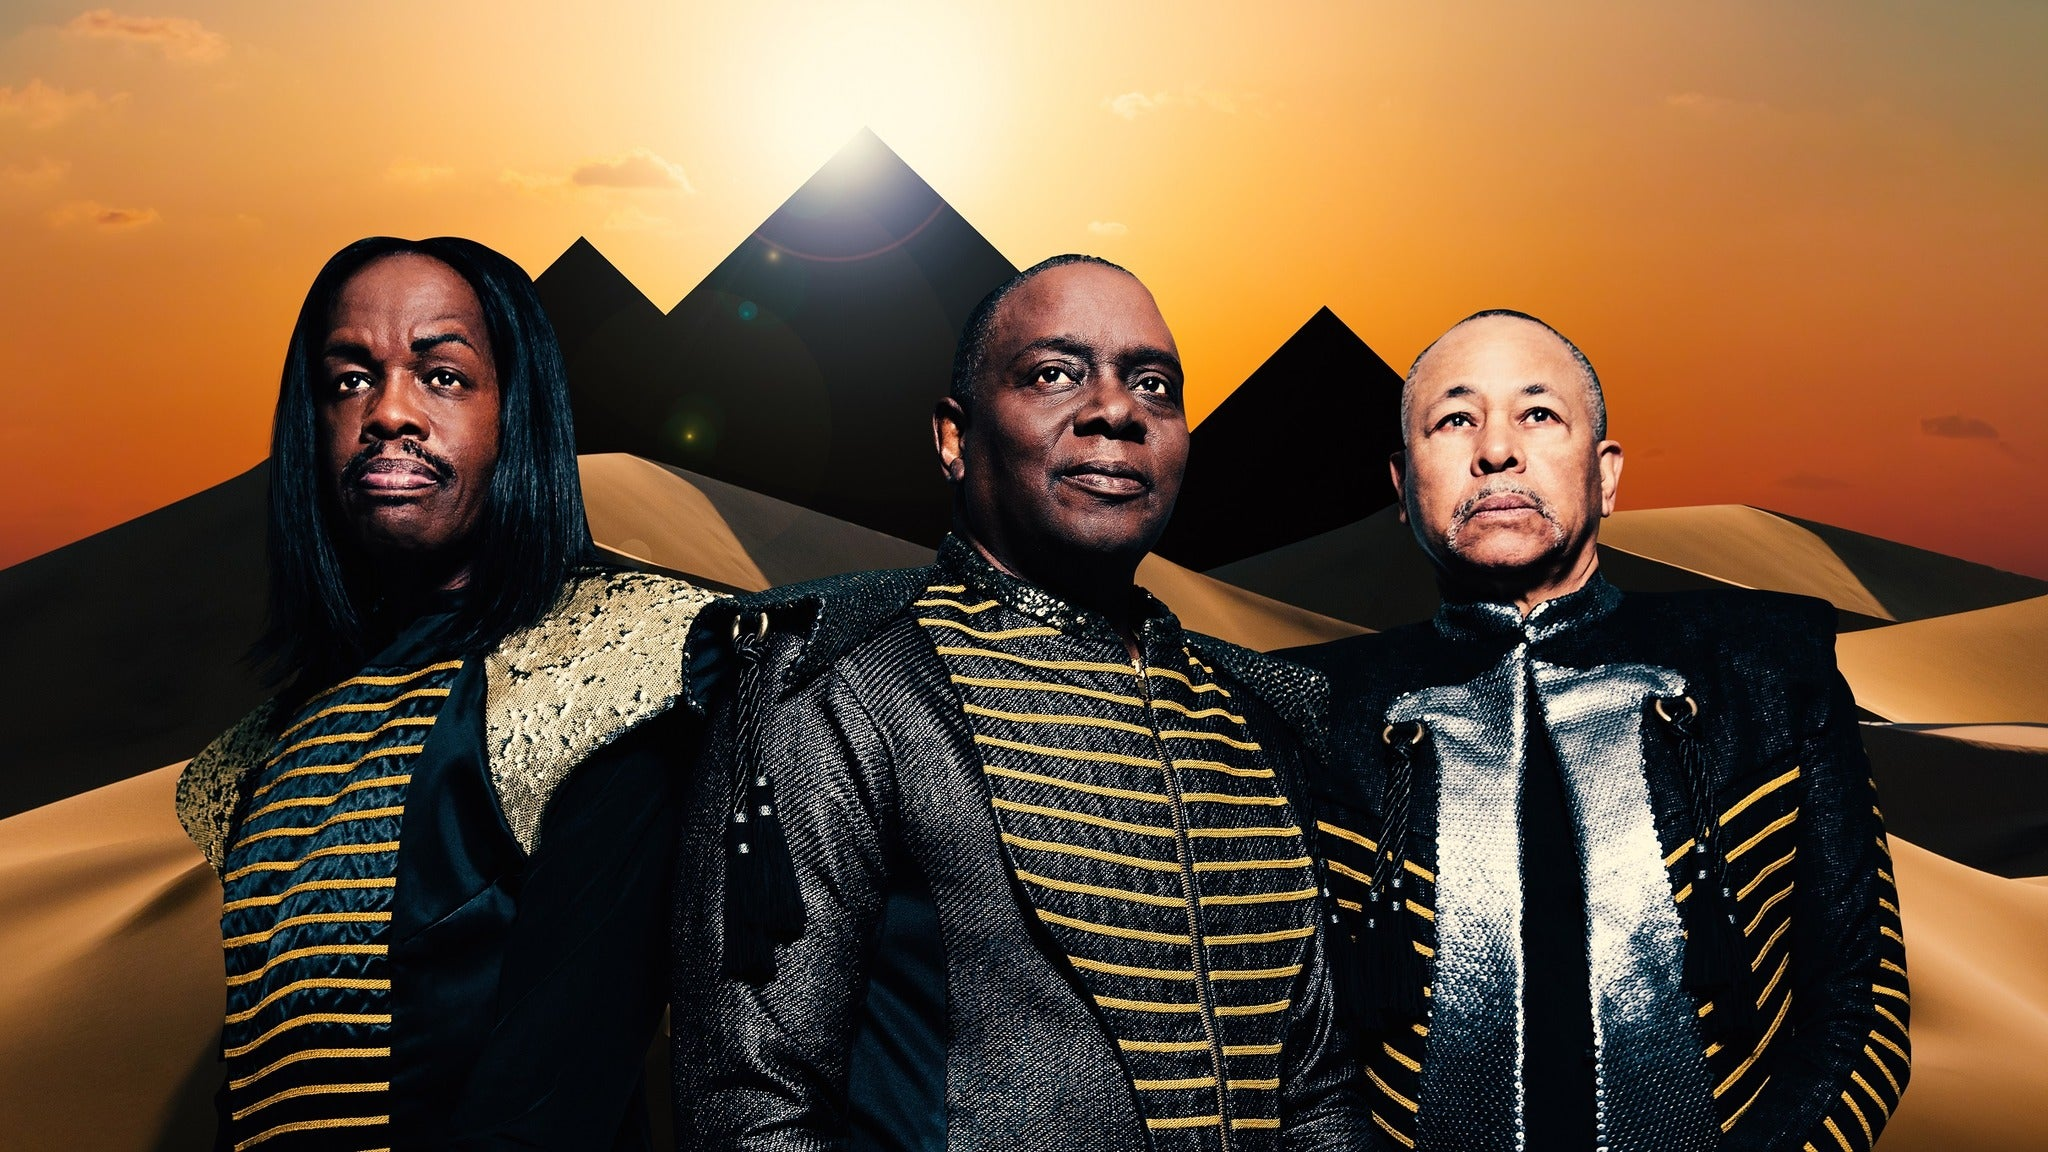 Earth, Wind & Fire - Atlantic City, NJ 08401